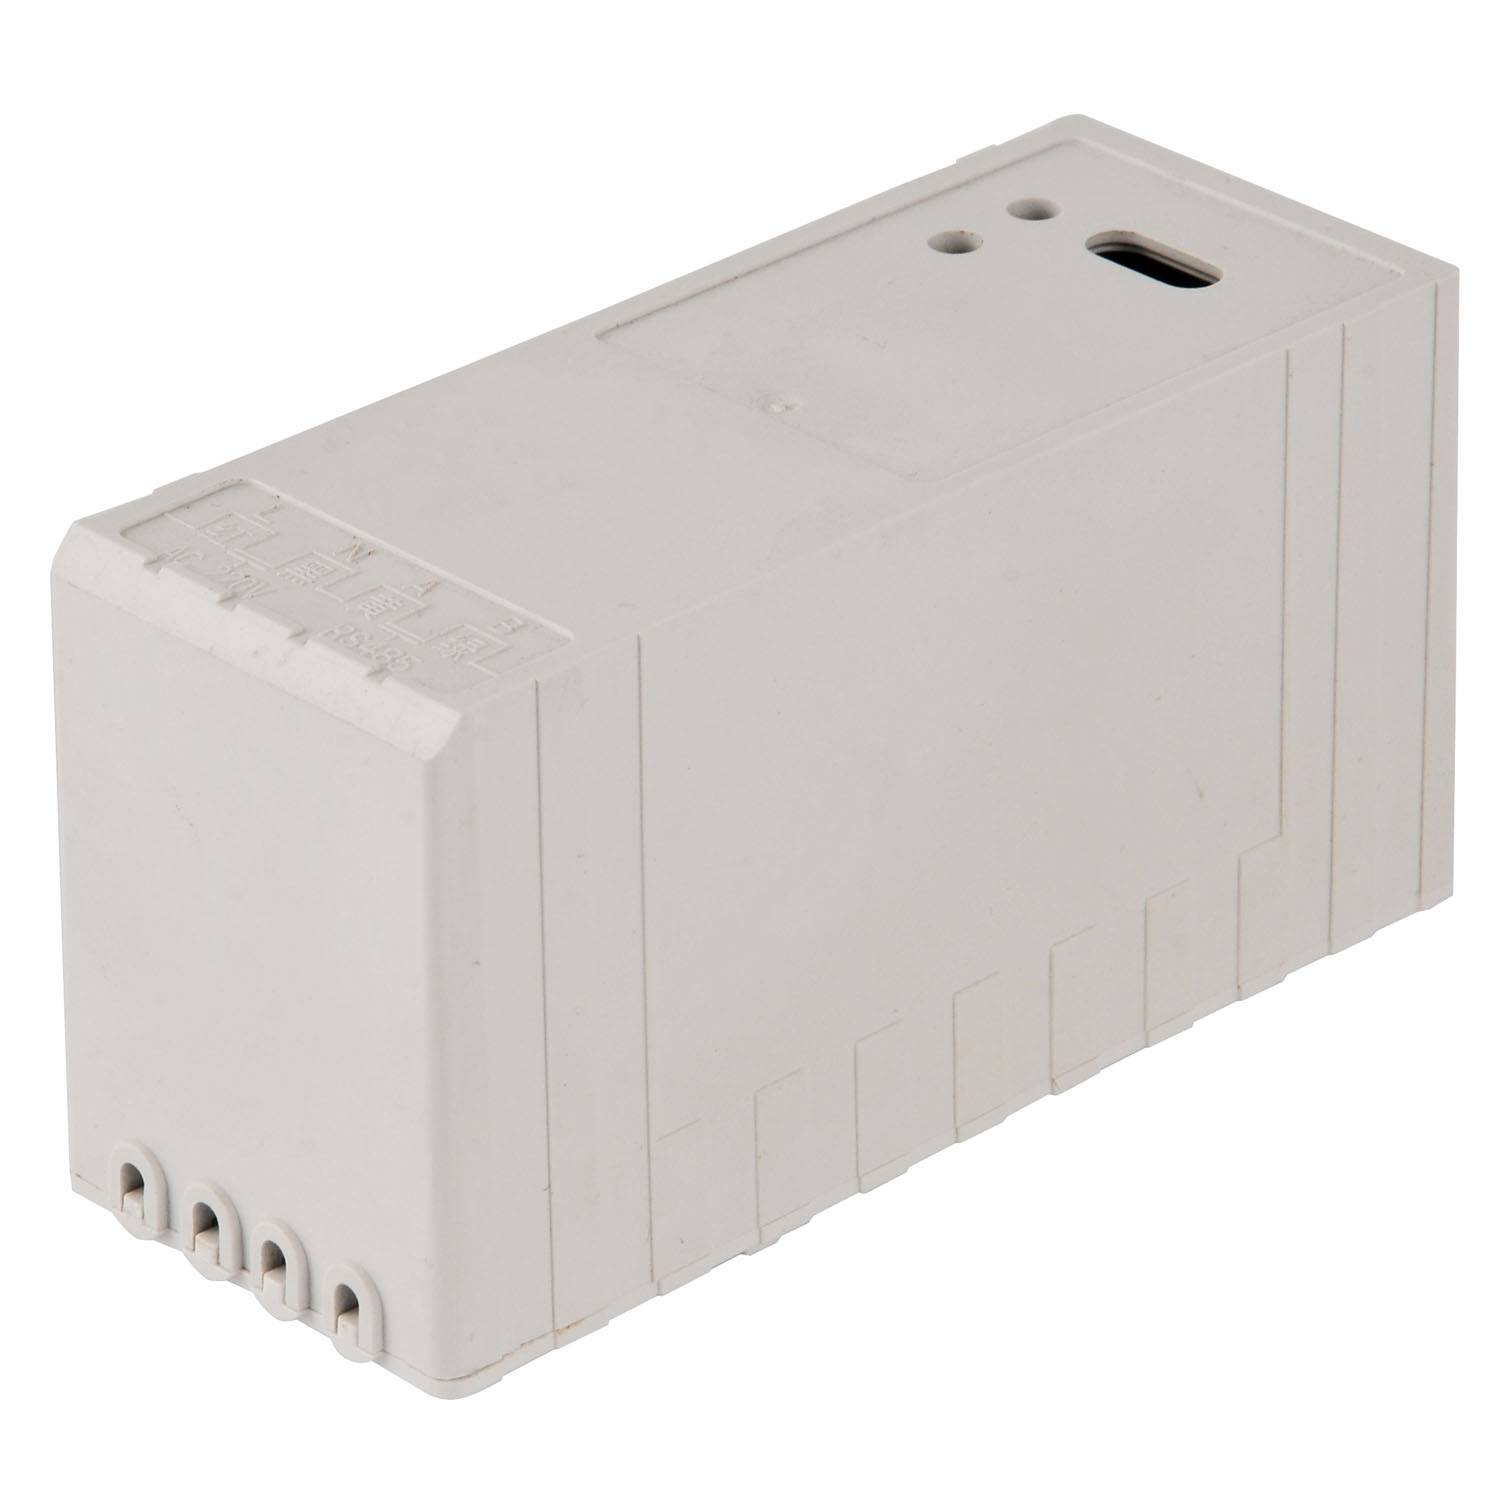 C048 water resistant single phase electrical enclosures